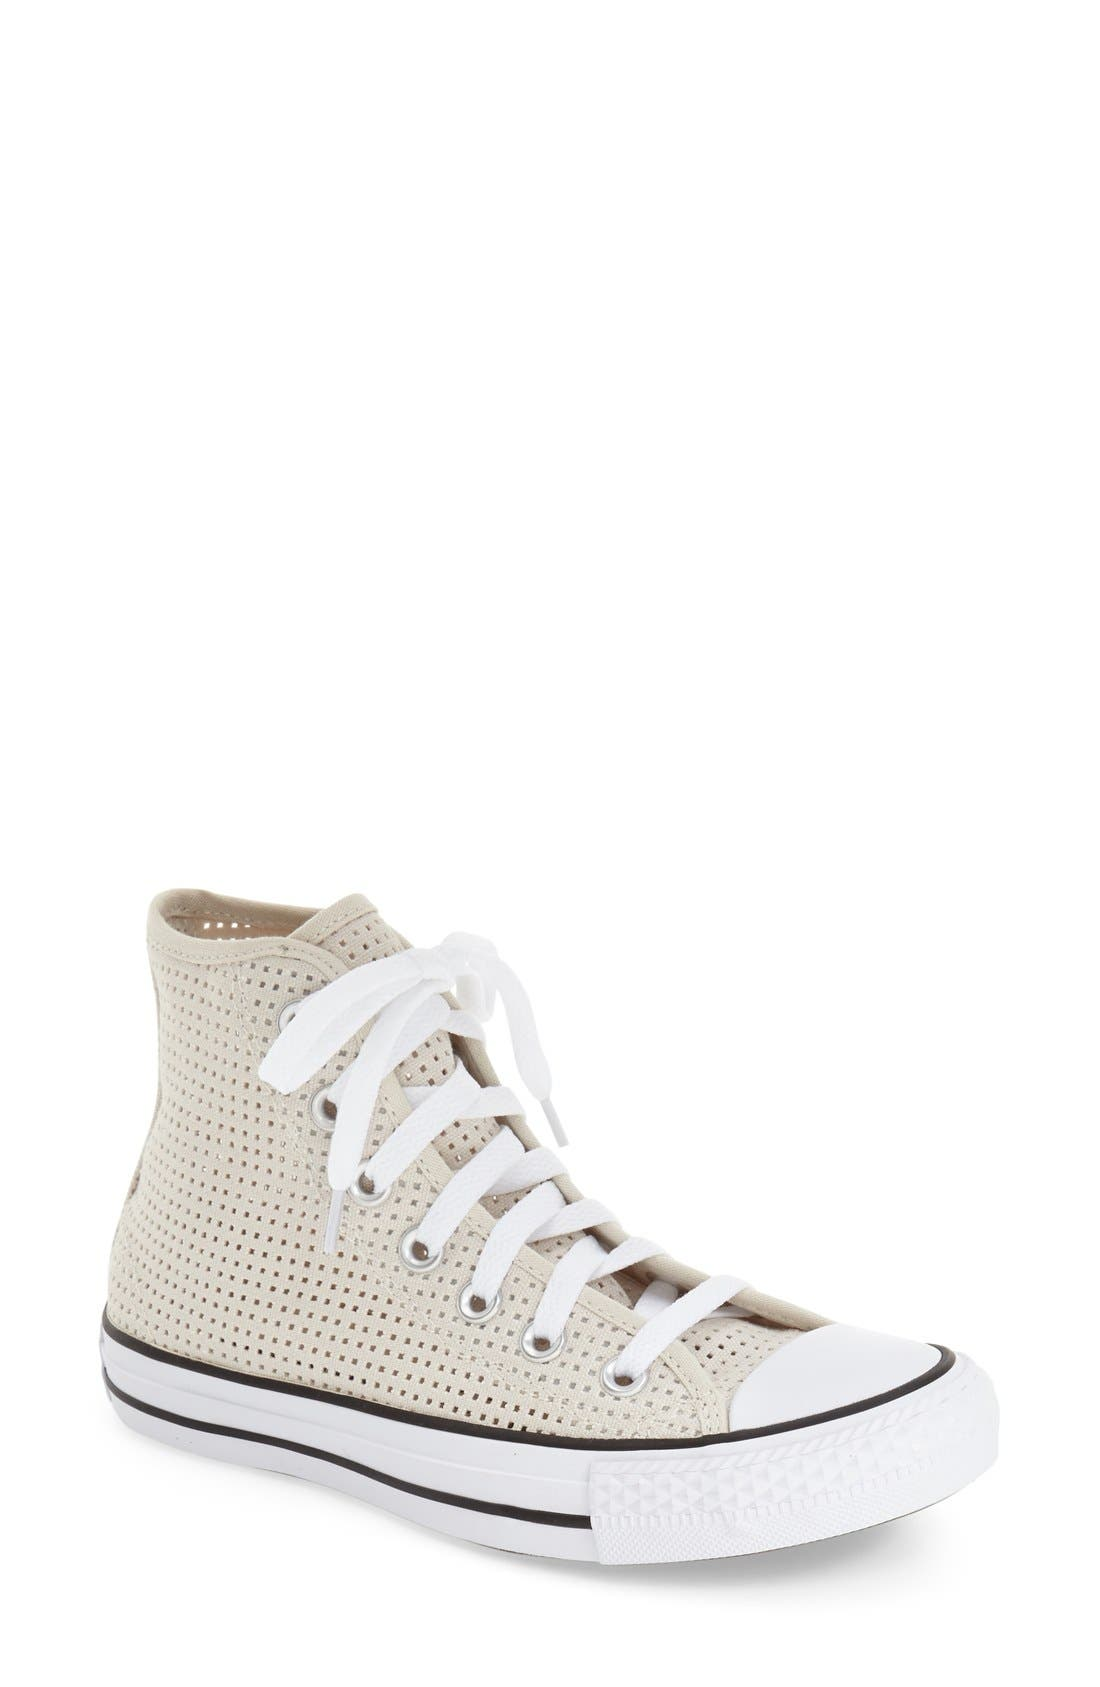 Alternate Image 1 Selected - Converse Chuck Taylor® All Star® Perforated Canvas High Top Sneaker (Women)